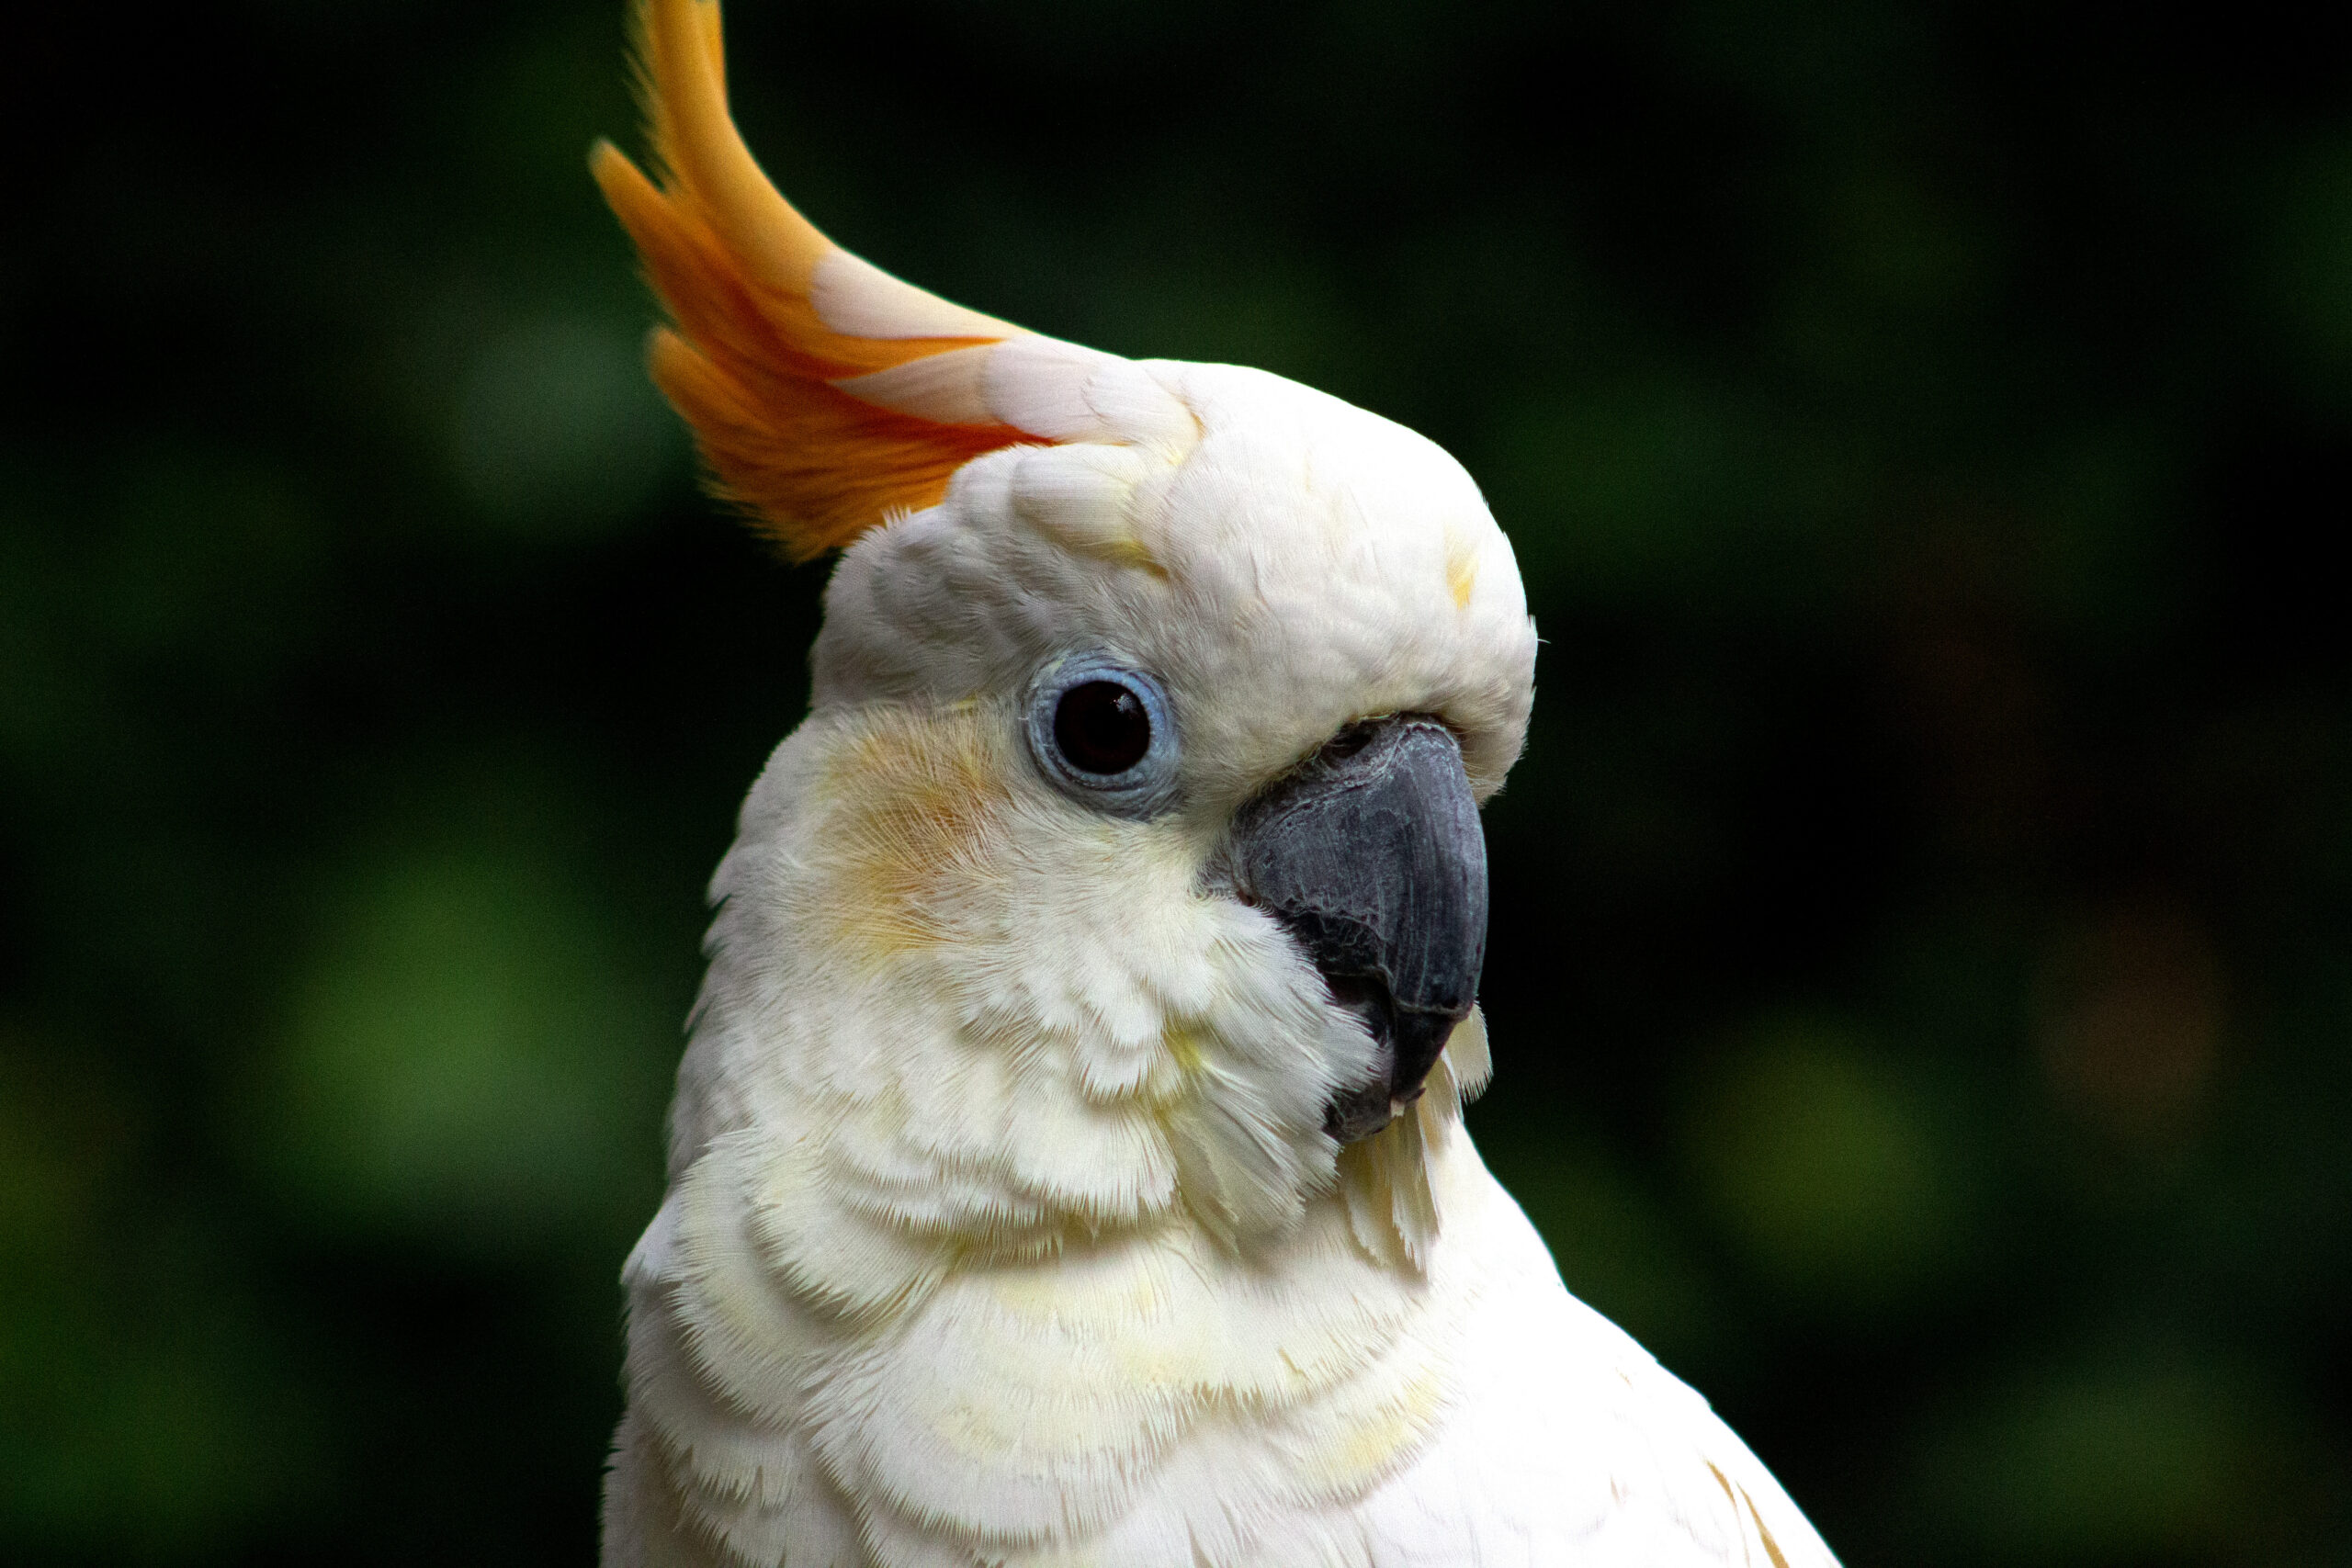 Gidget, a Citron-Crested Cockatoo at Bloedel Conservatory, March 2019